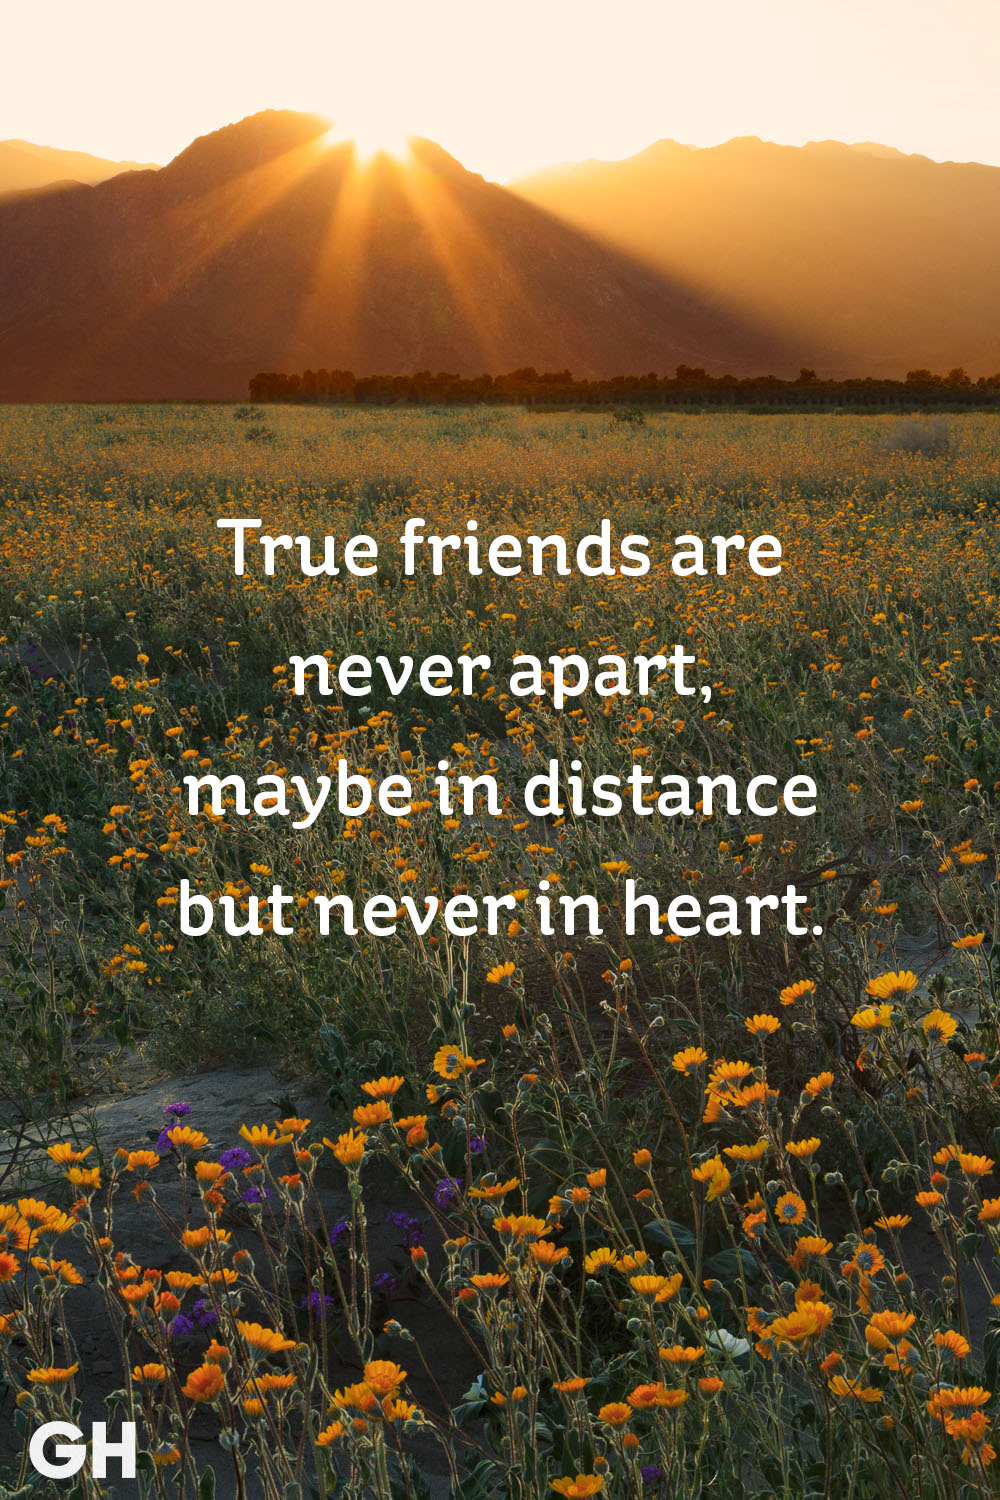 Quotes About Long Distance Friendship 20 Short Friendship Quotes To Share With Your Bff  Cute Sayings